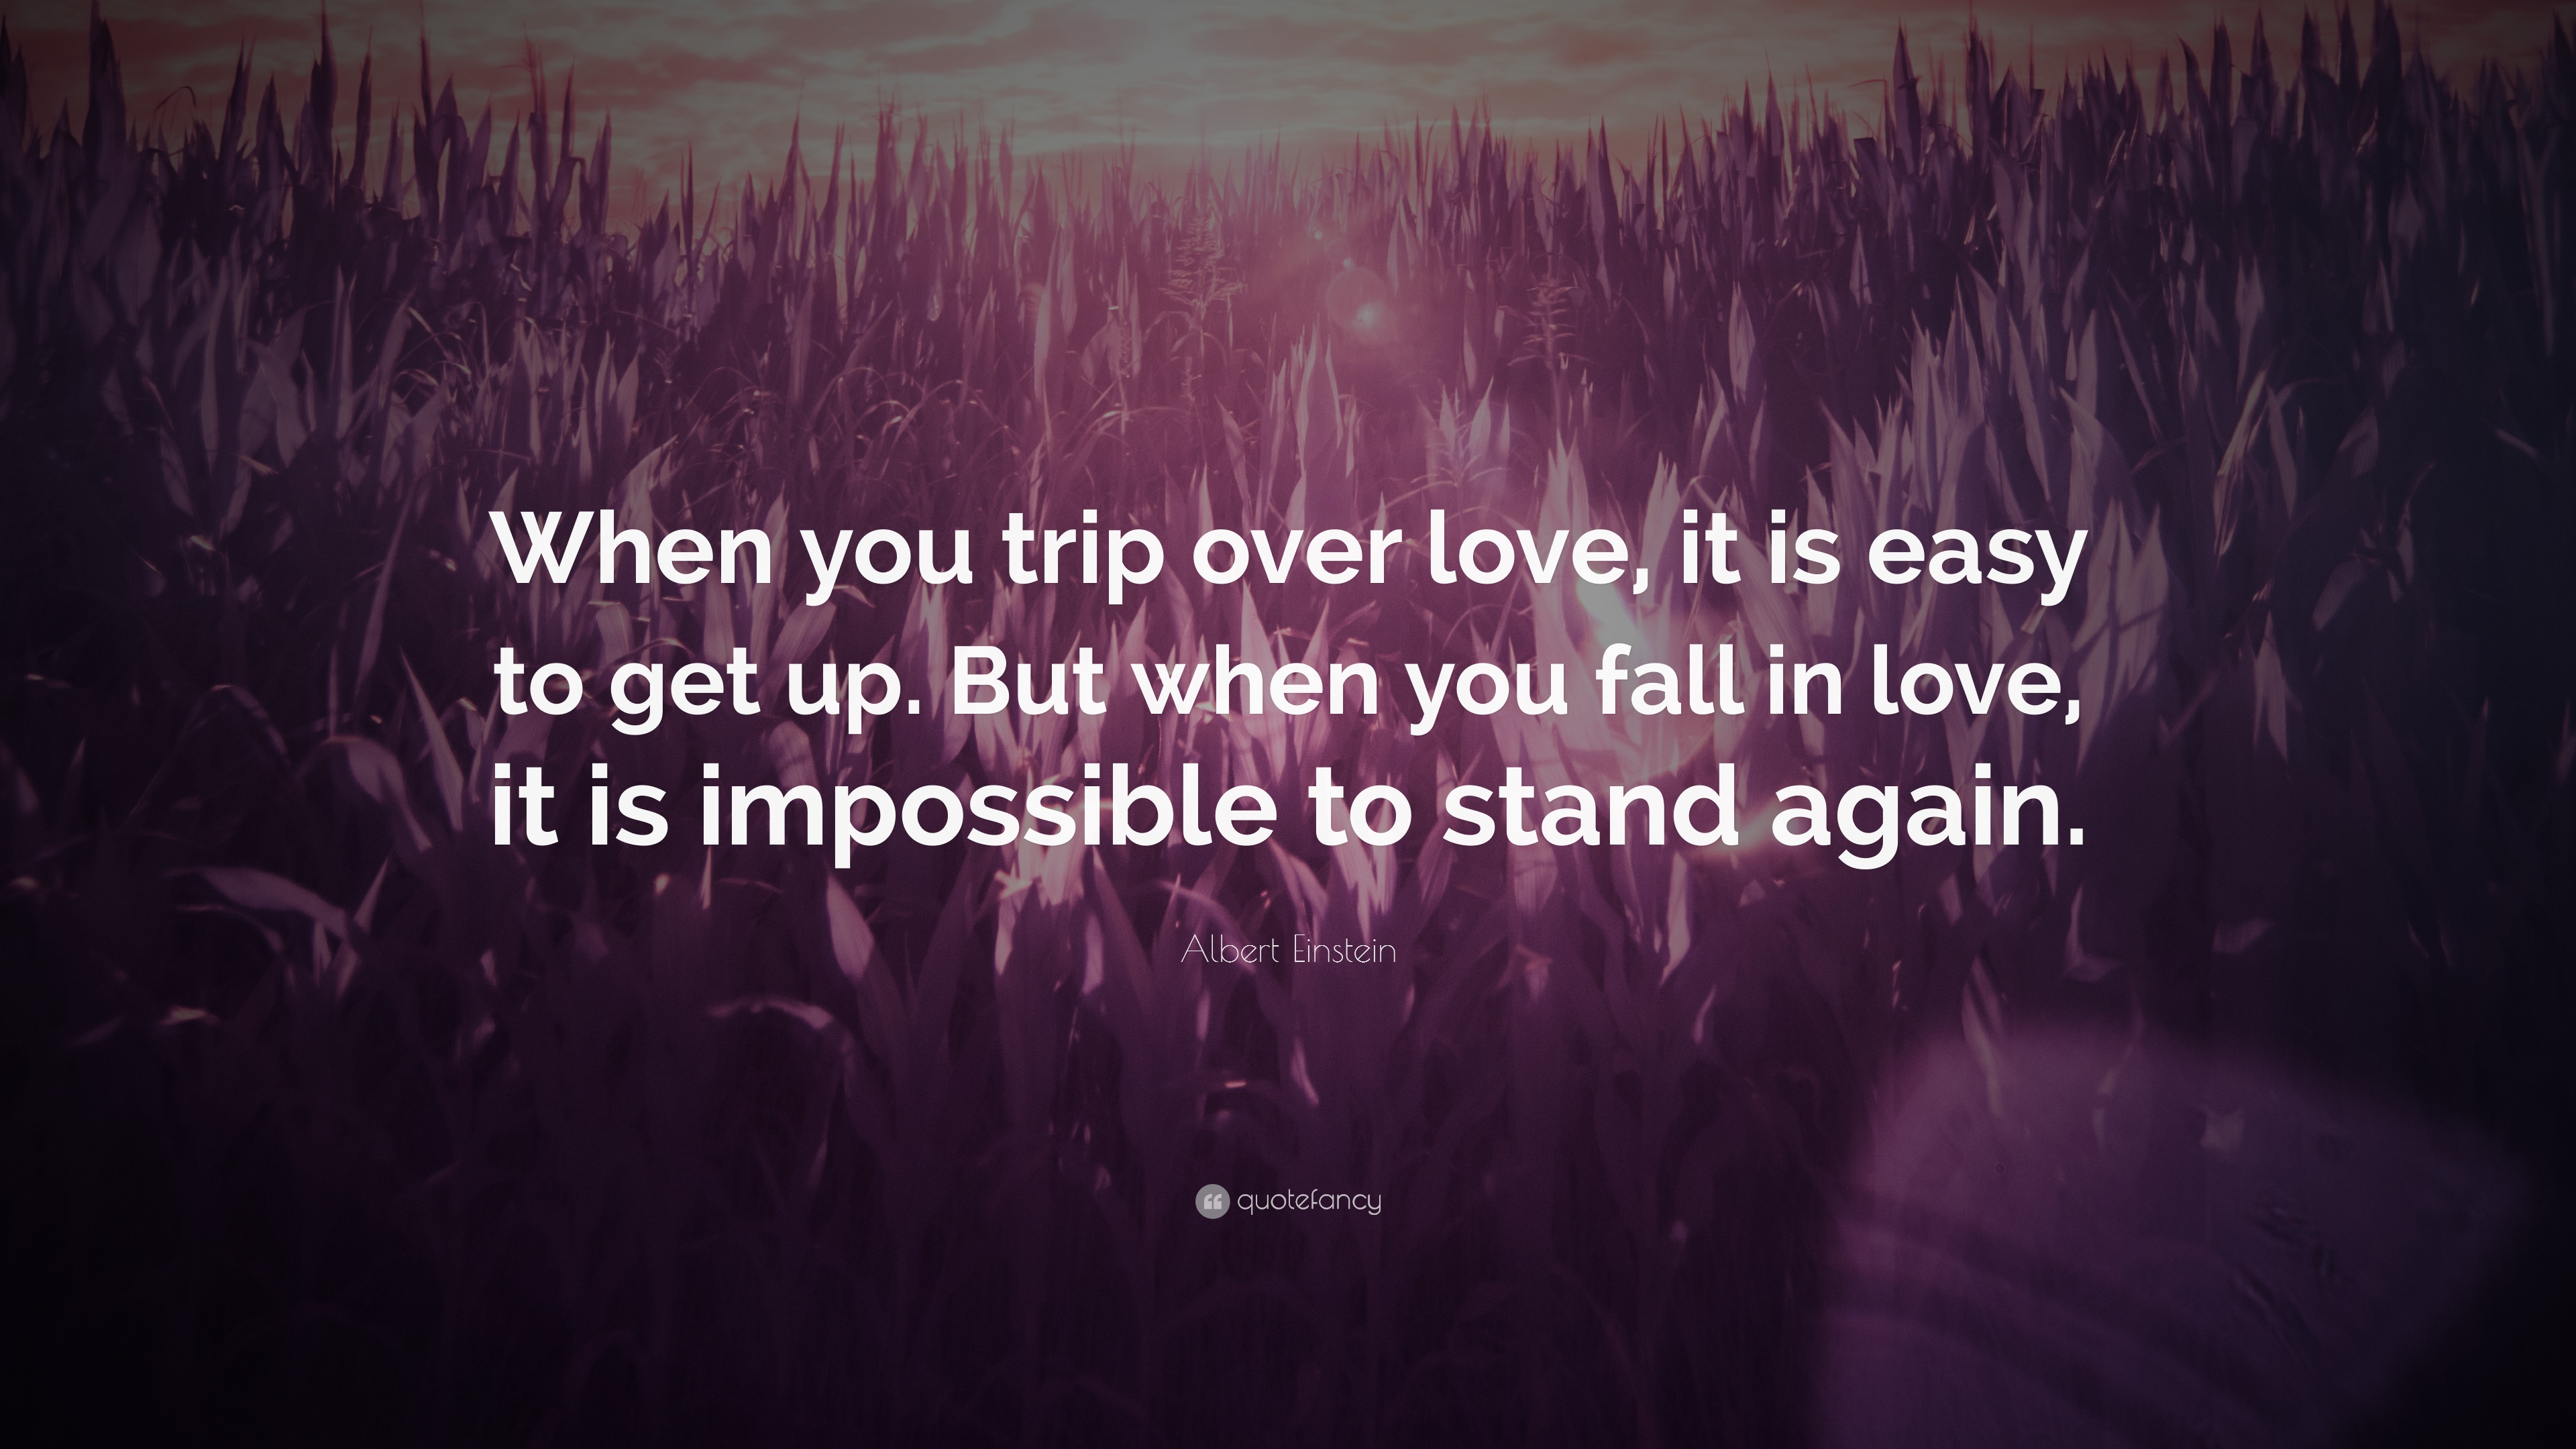 Love Quotes With Images Love Quotes 26 Wallpapers  Quotefancy